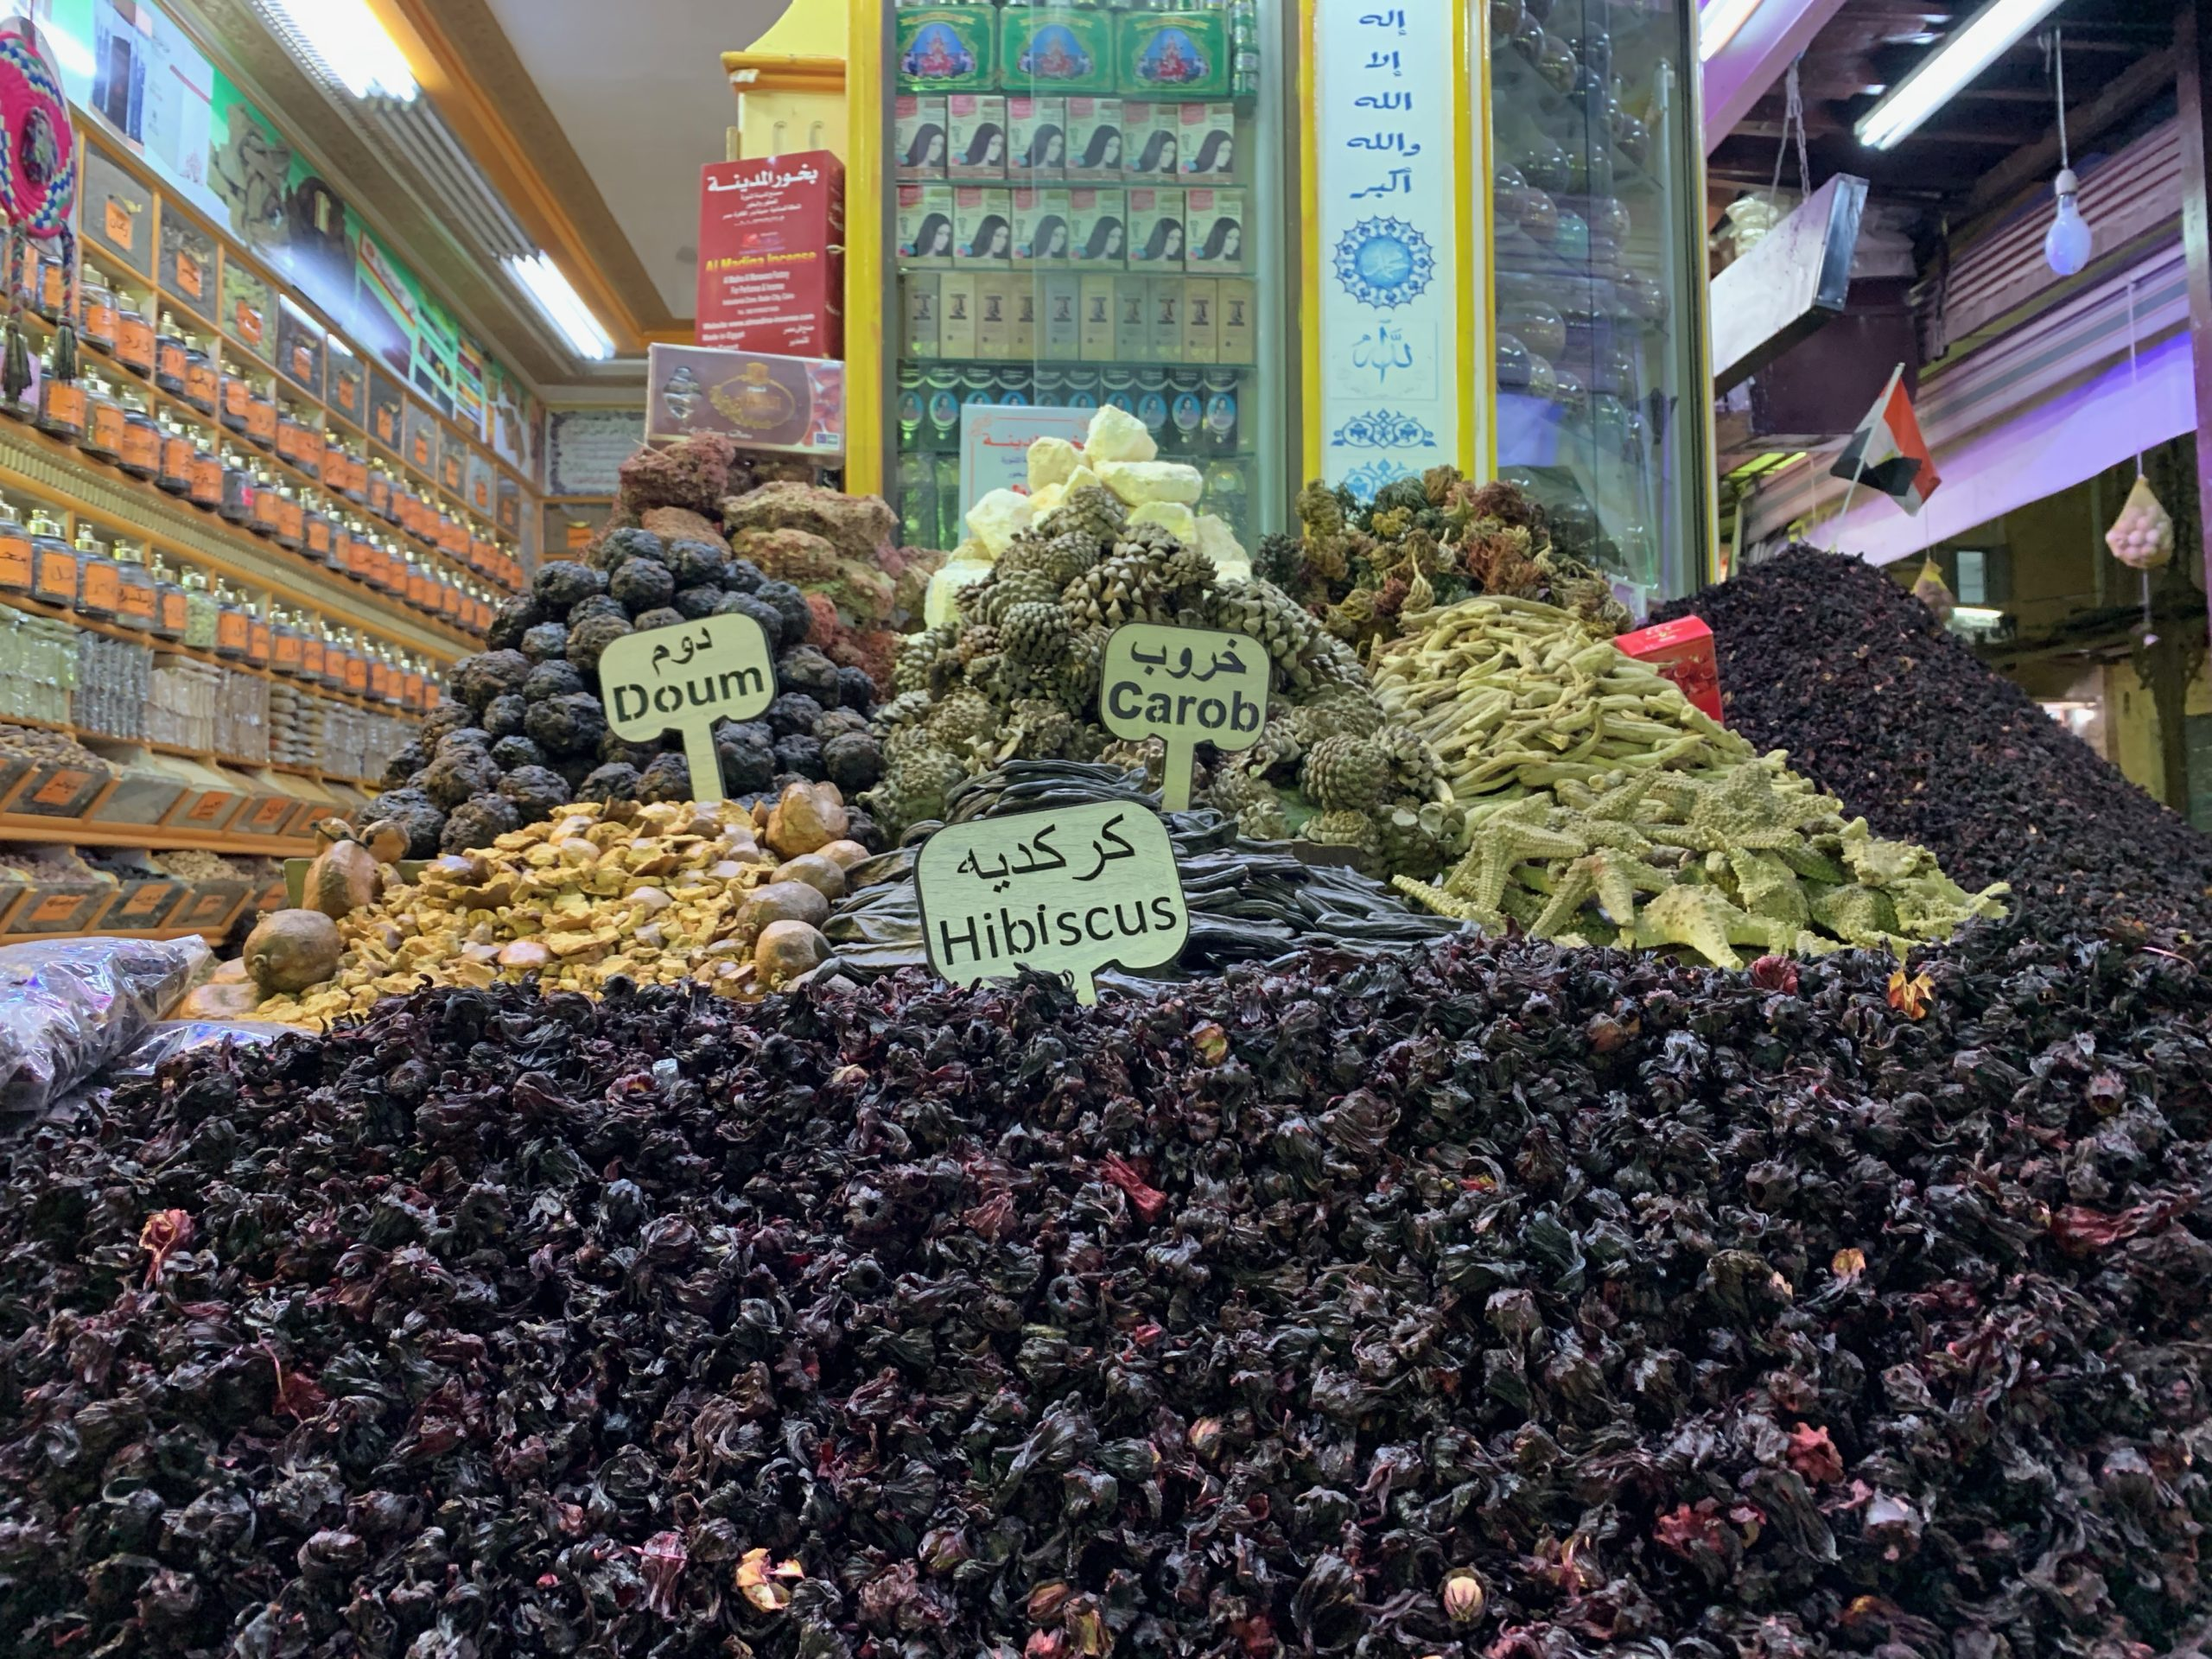 Pile of spices and dates at Aswan marketplace